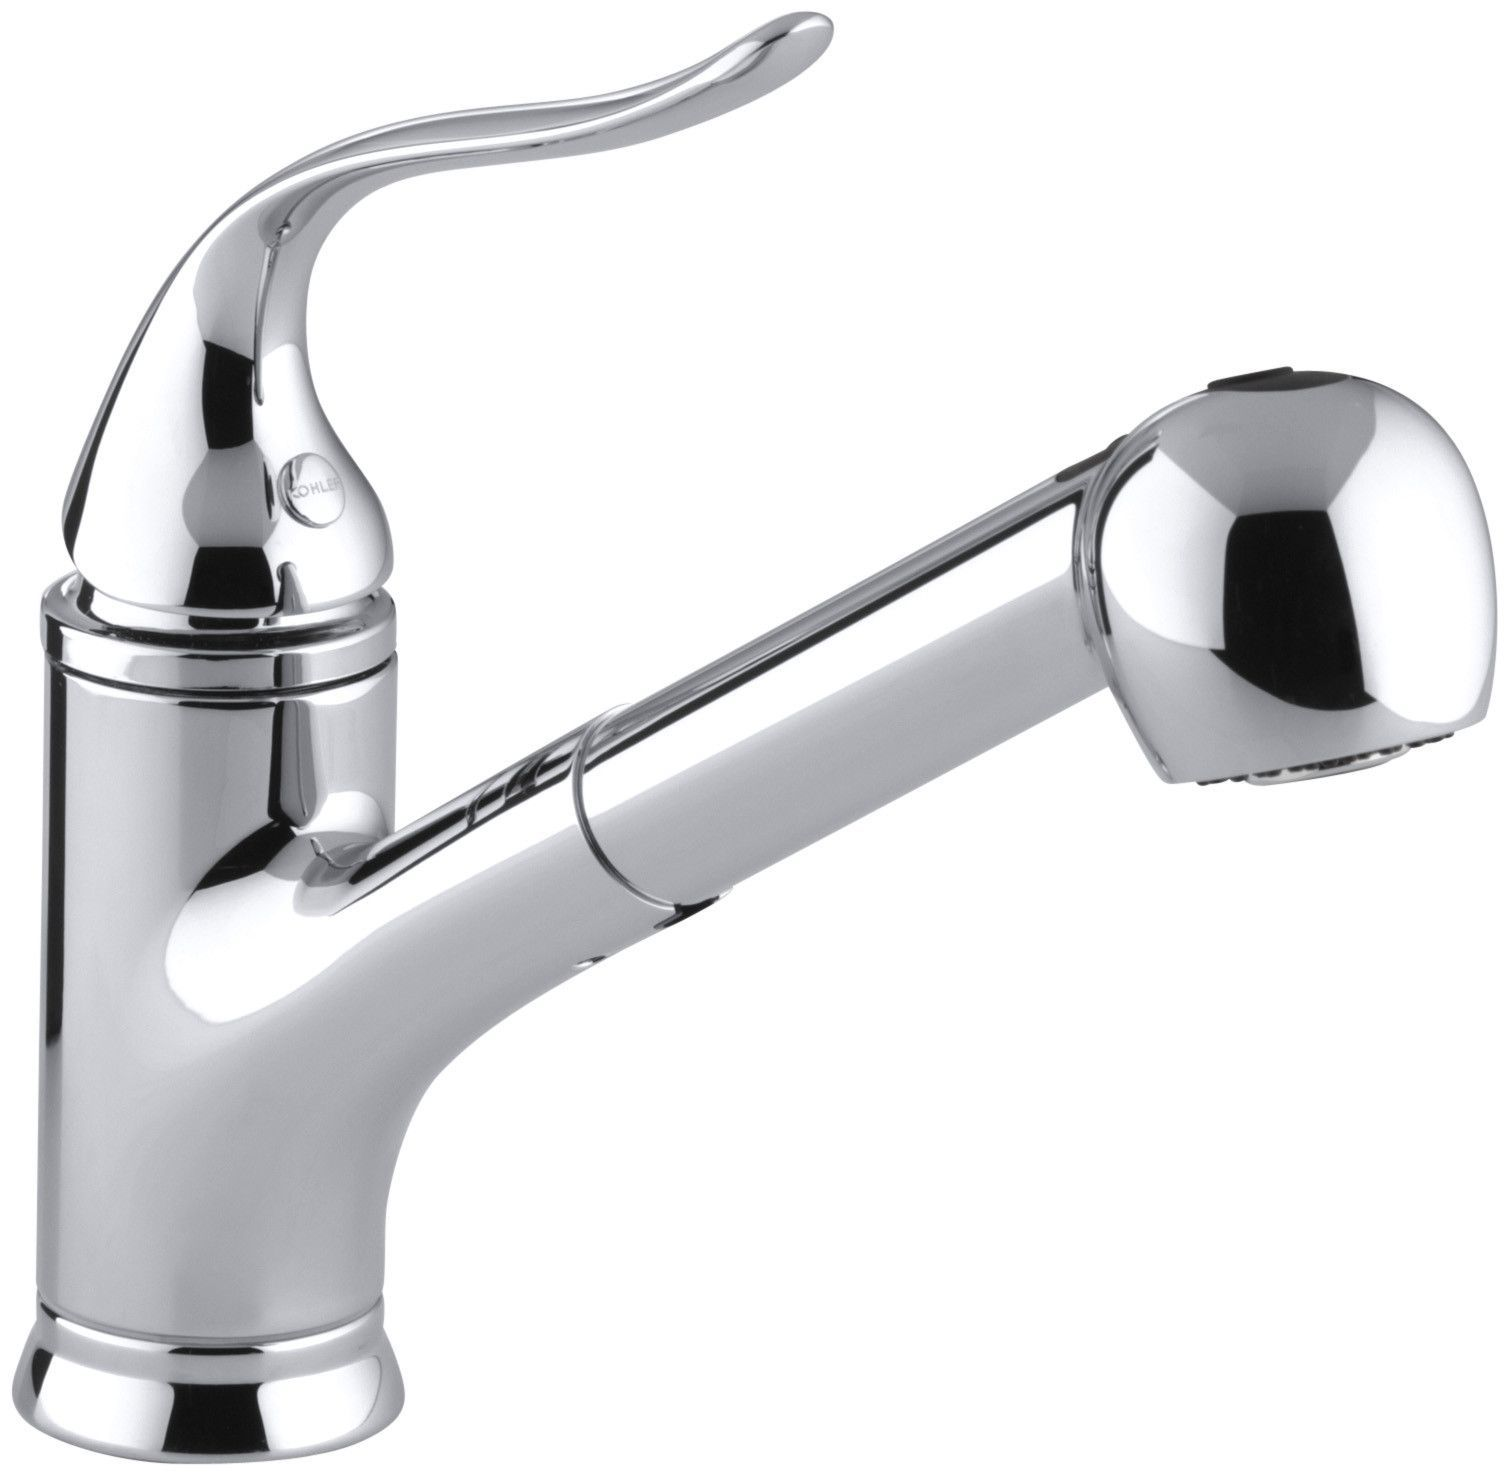 Coralais Pullout Single Handle Kitchen Faucet With Masterclean